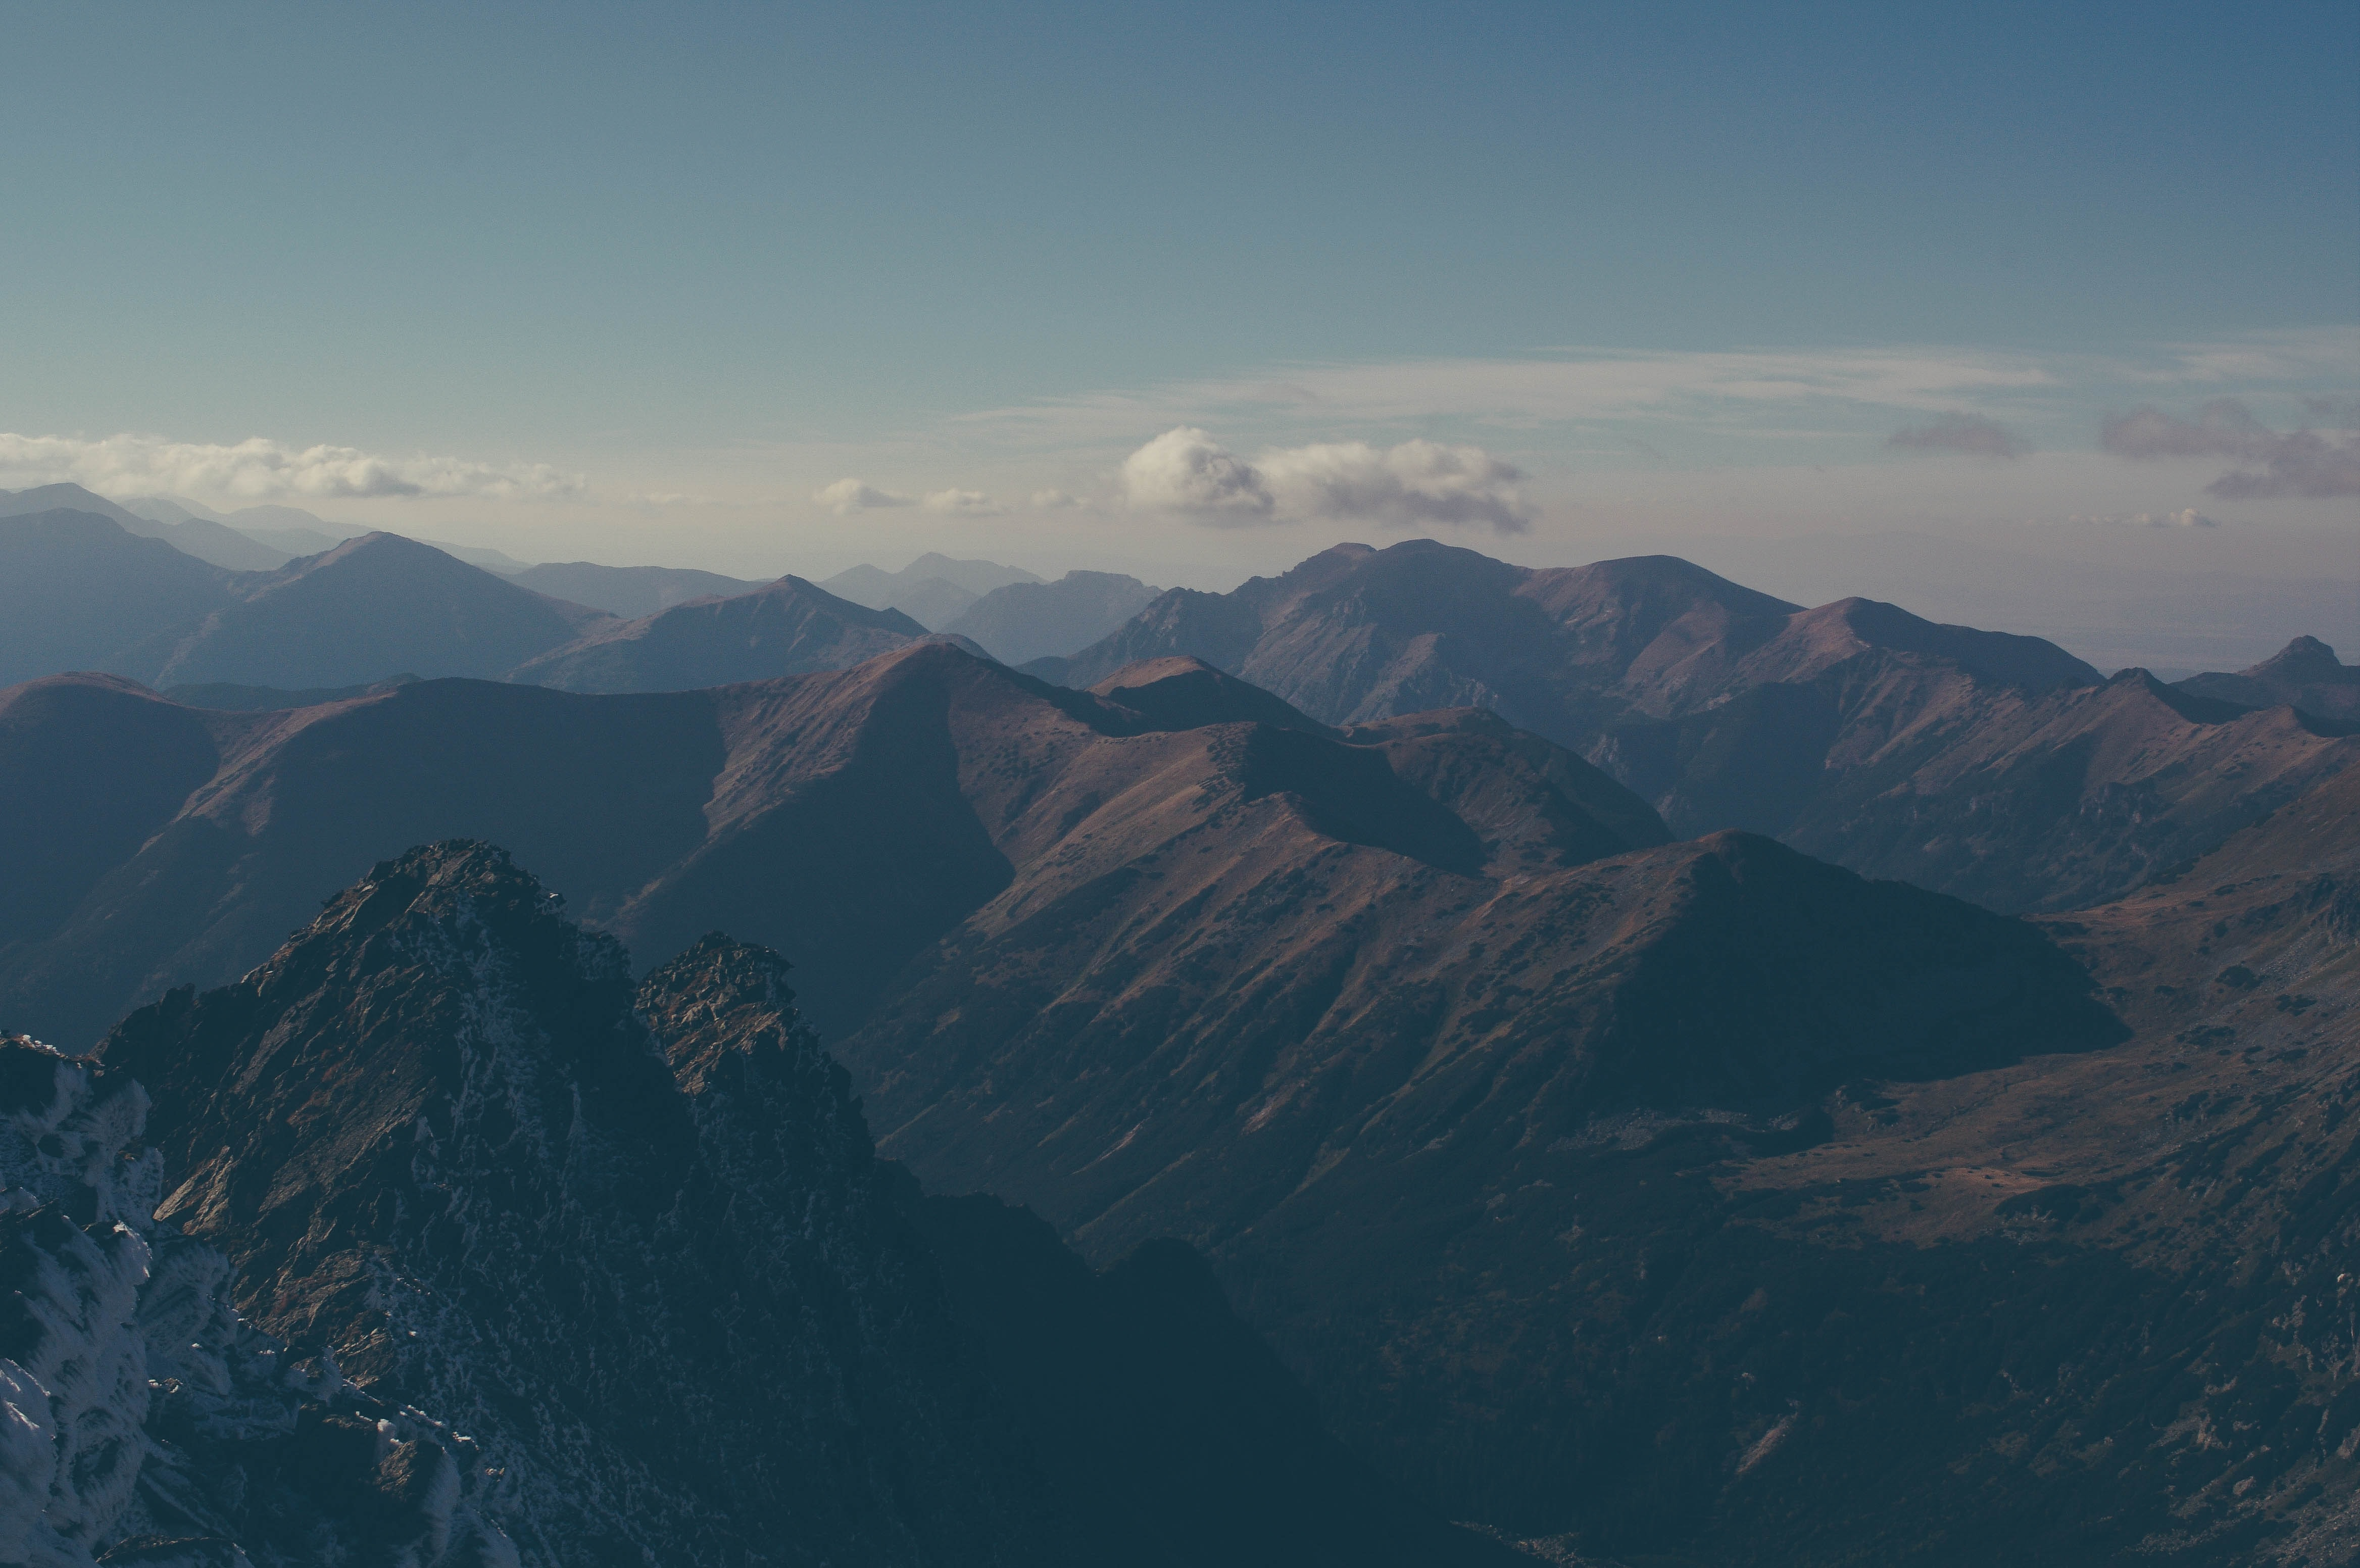 Tall peaks and sharp ridges stretch to the horizon under a pale blue sky